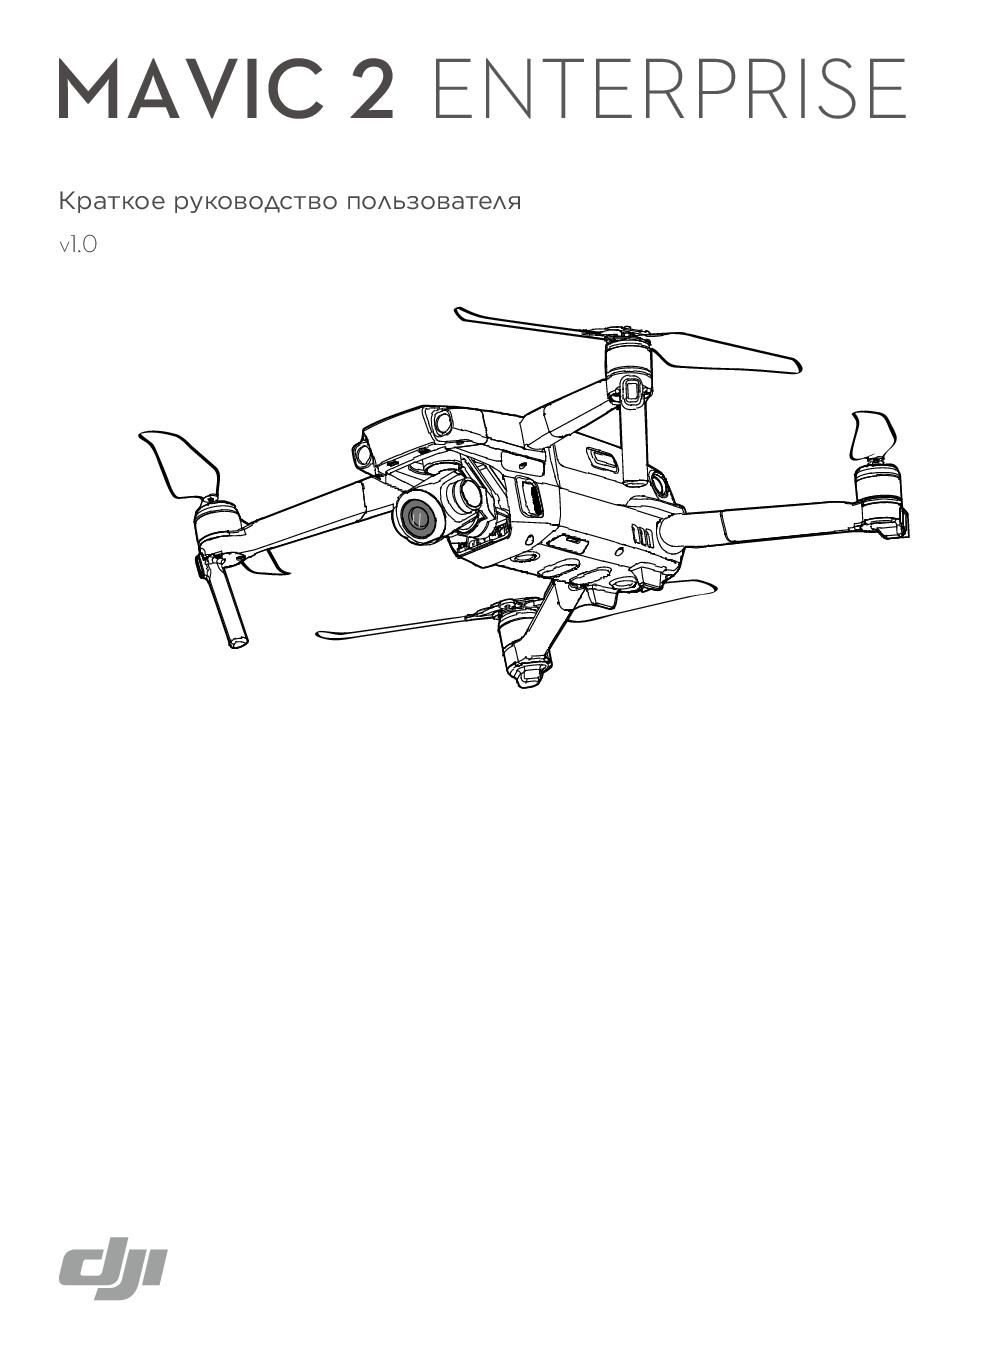 DJI Mavic 2 Enterprise краткая инструкция на русском